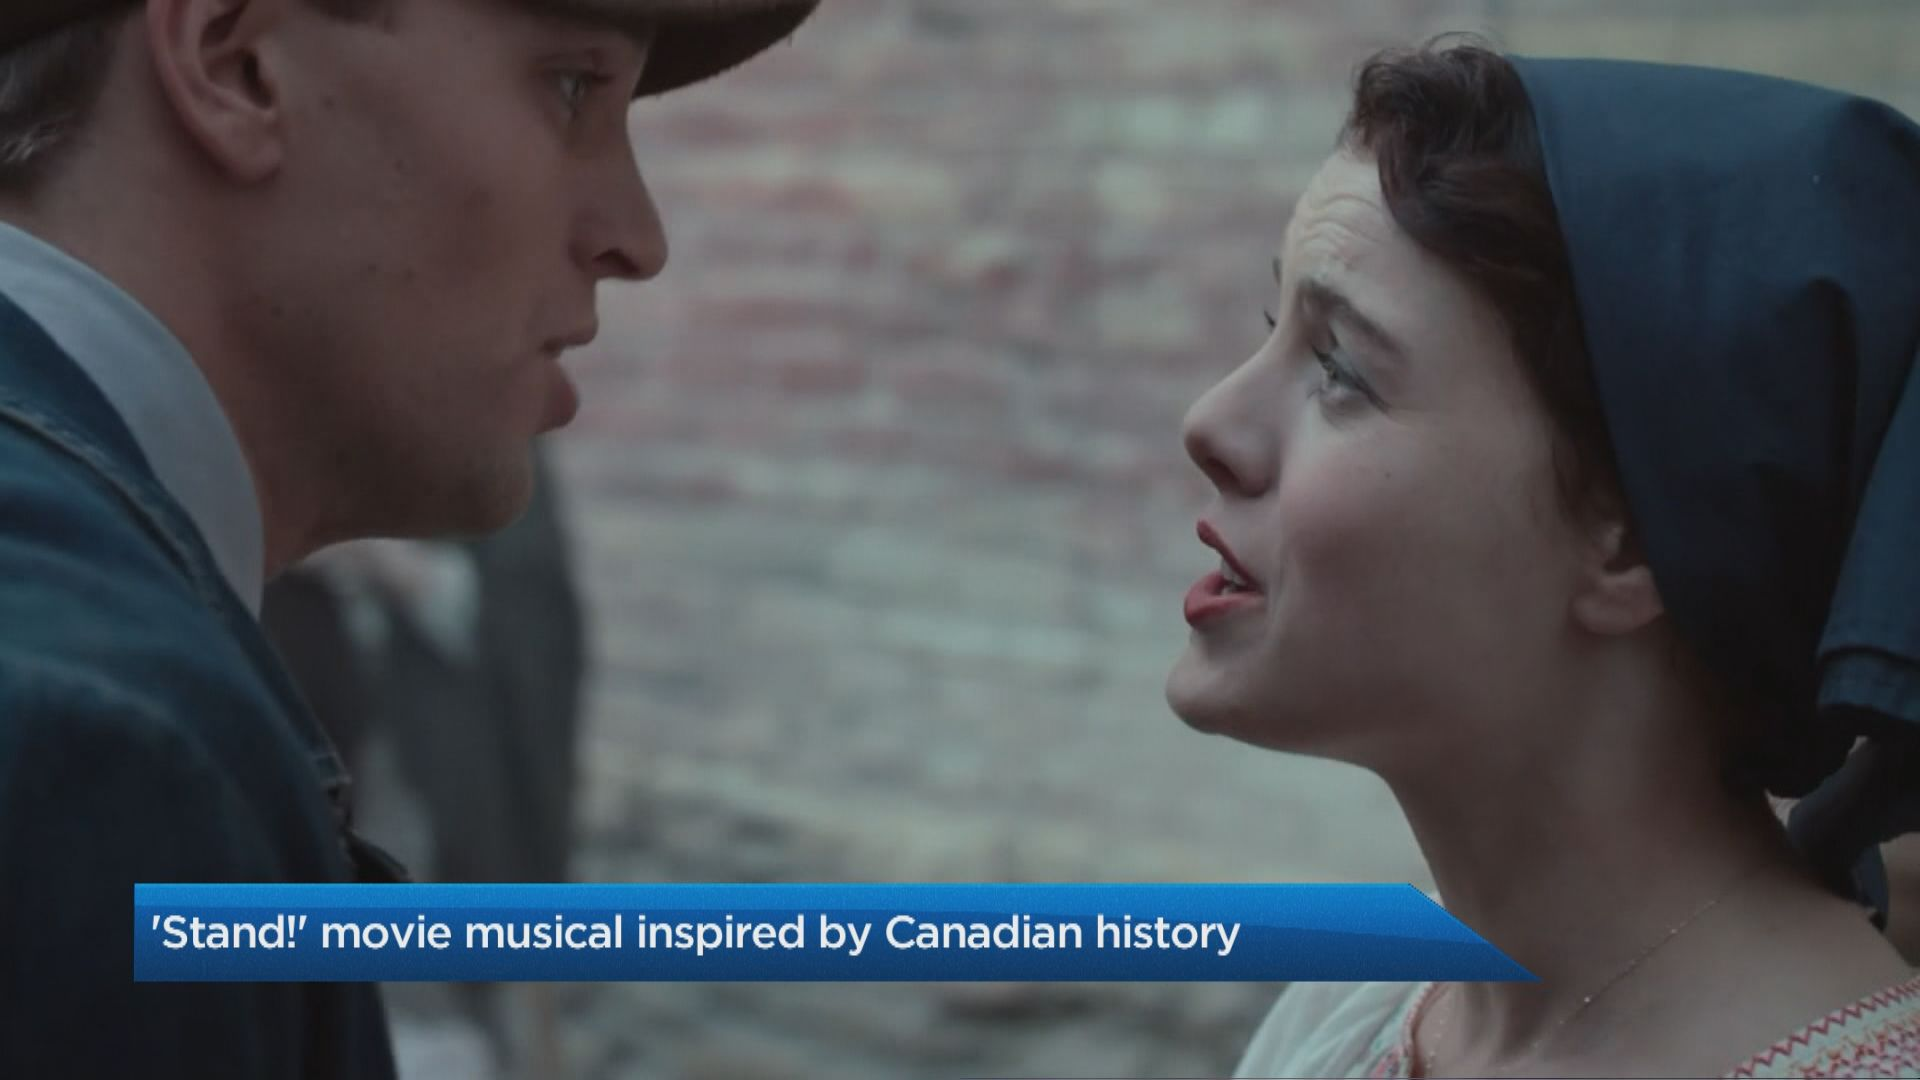 'Stand!' the musical movie inspired by Canadian history